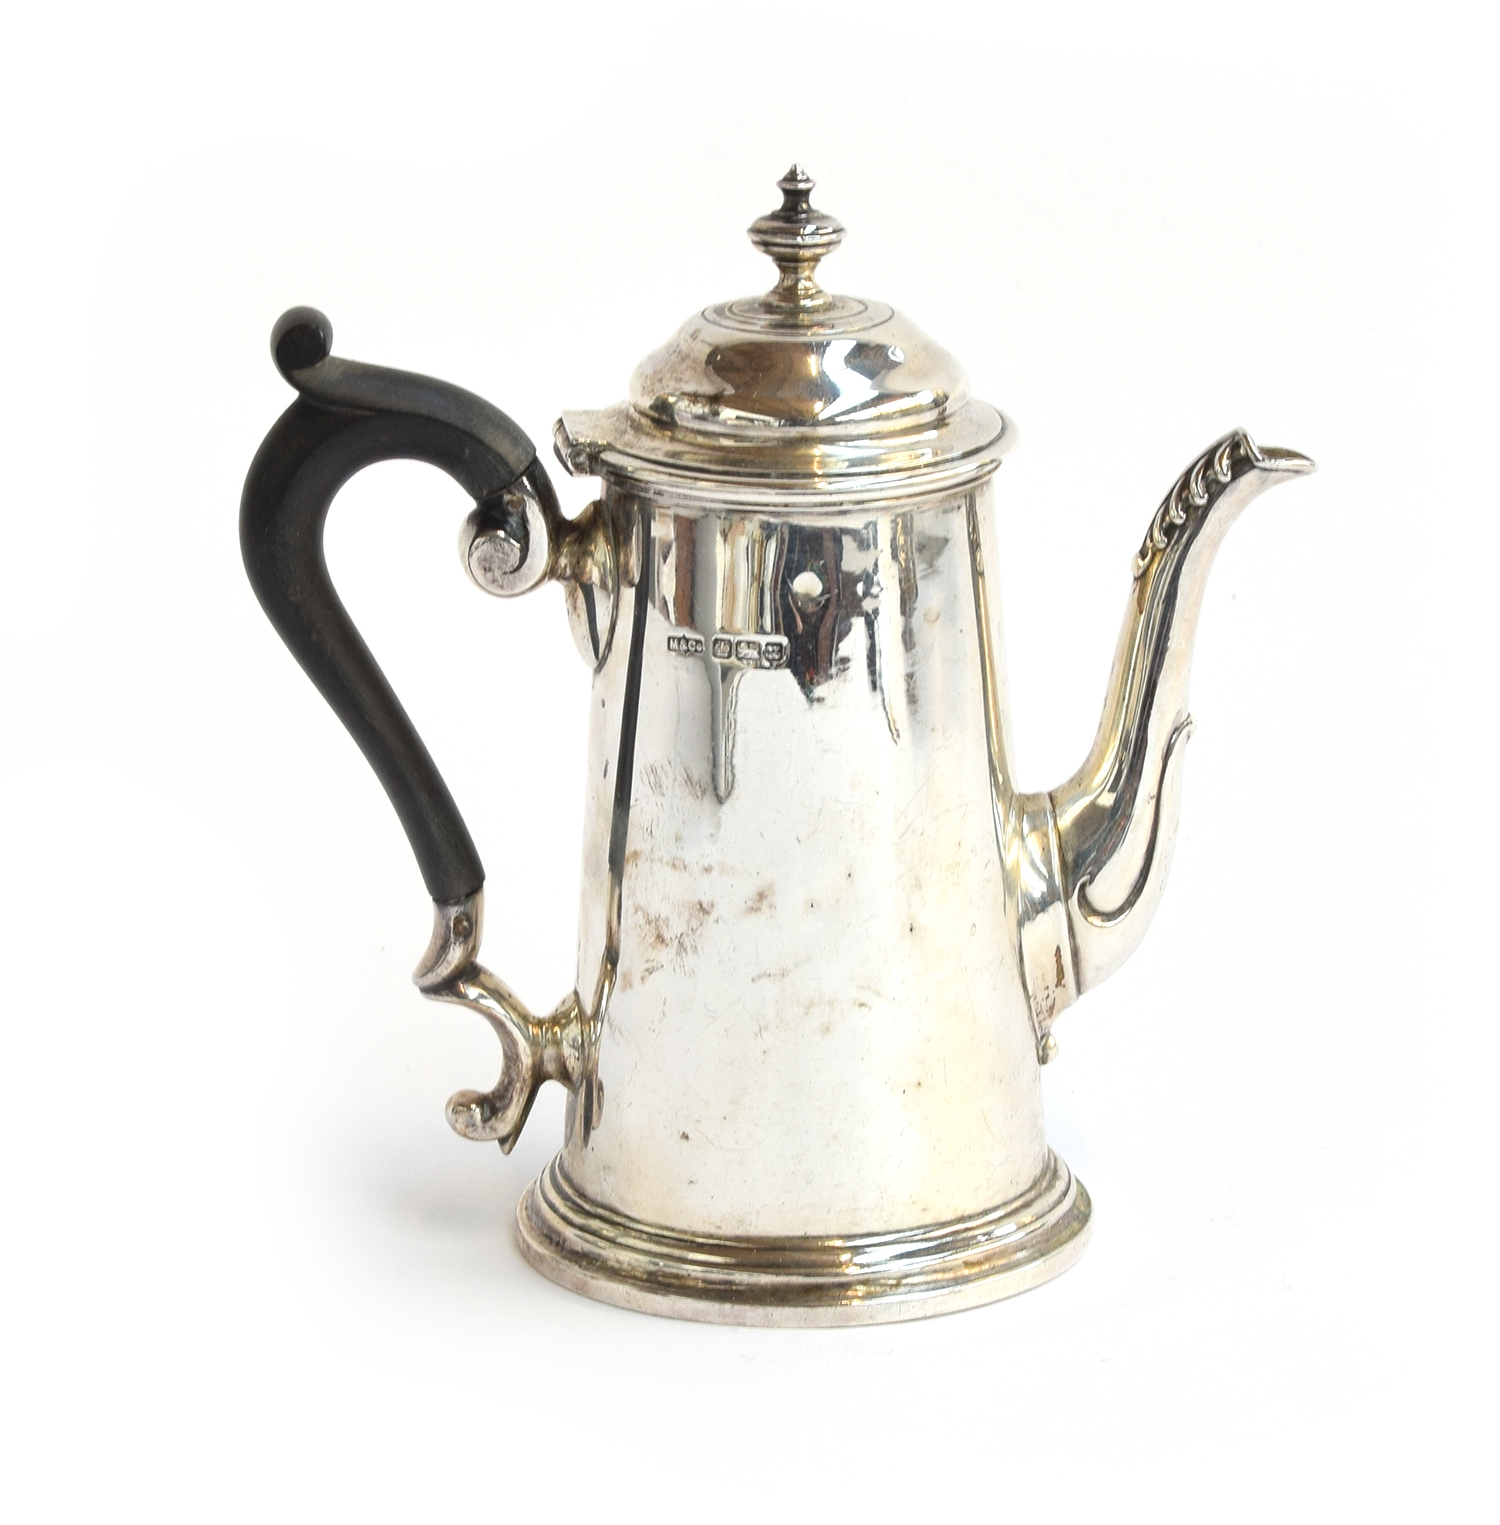 A small Queen Anne style silver coffee pot by Marples & Co, Sheffield 1905, 16cm high, 12.6oz